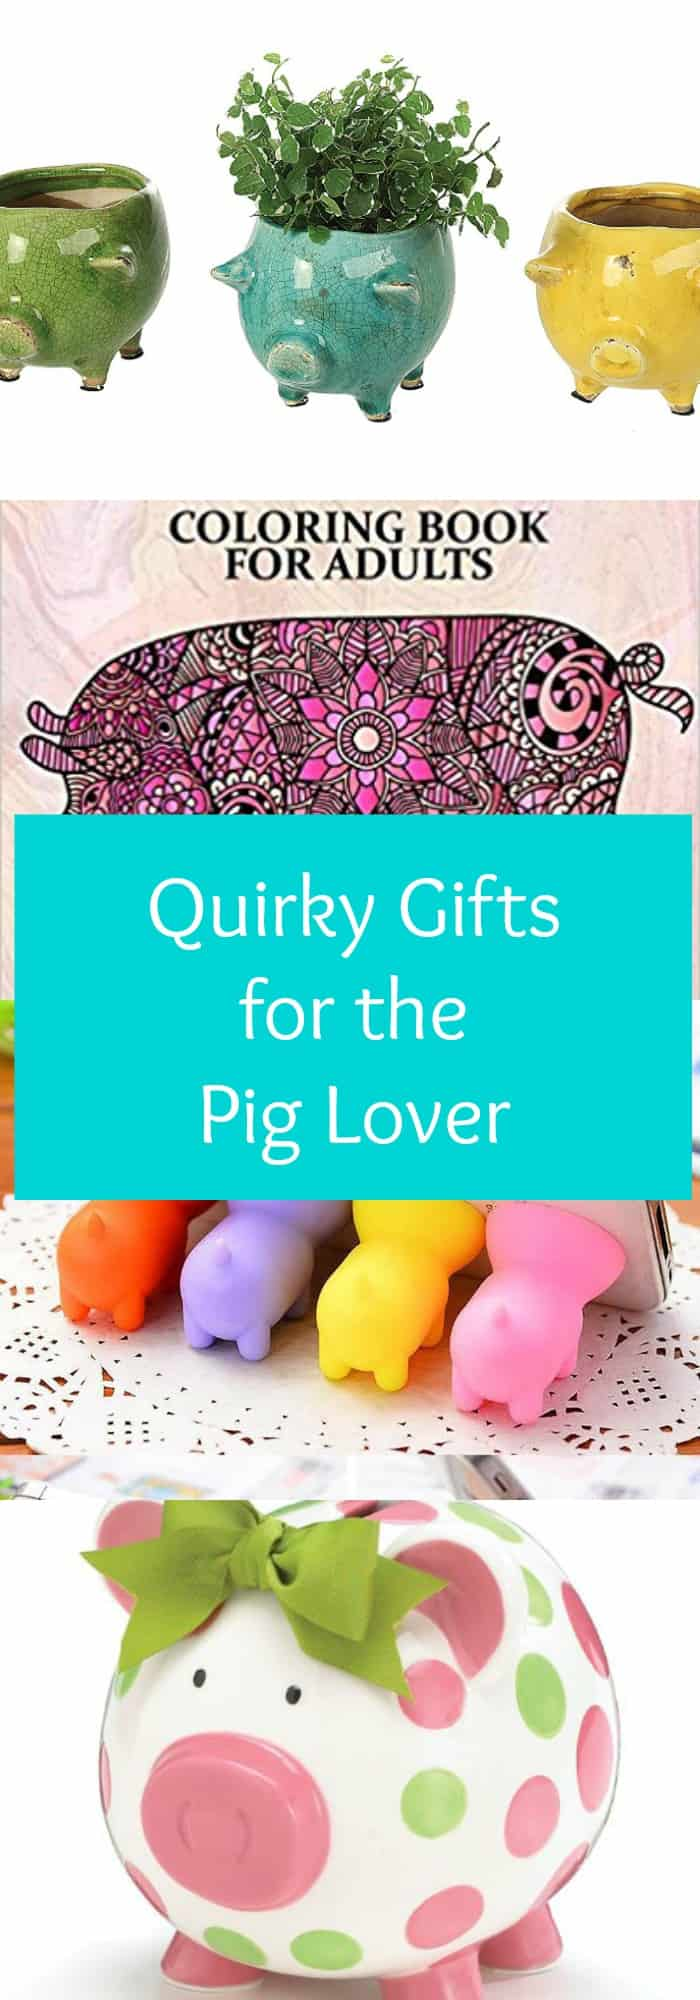 Home - Quirky gift ideas for the pig lover in your life - The Organized Mom